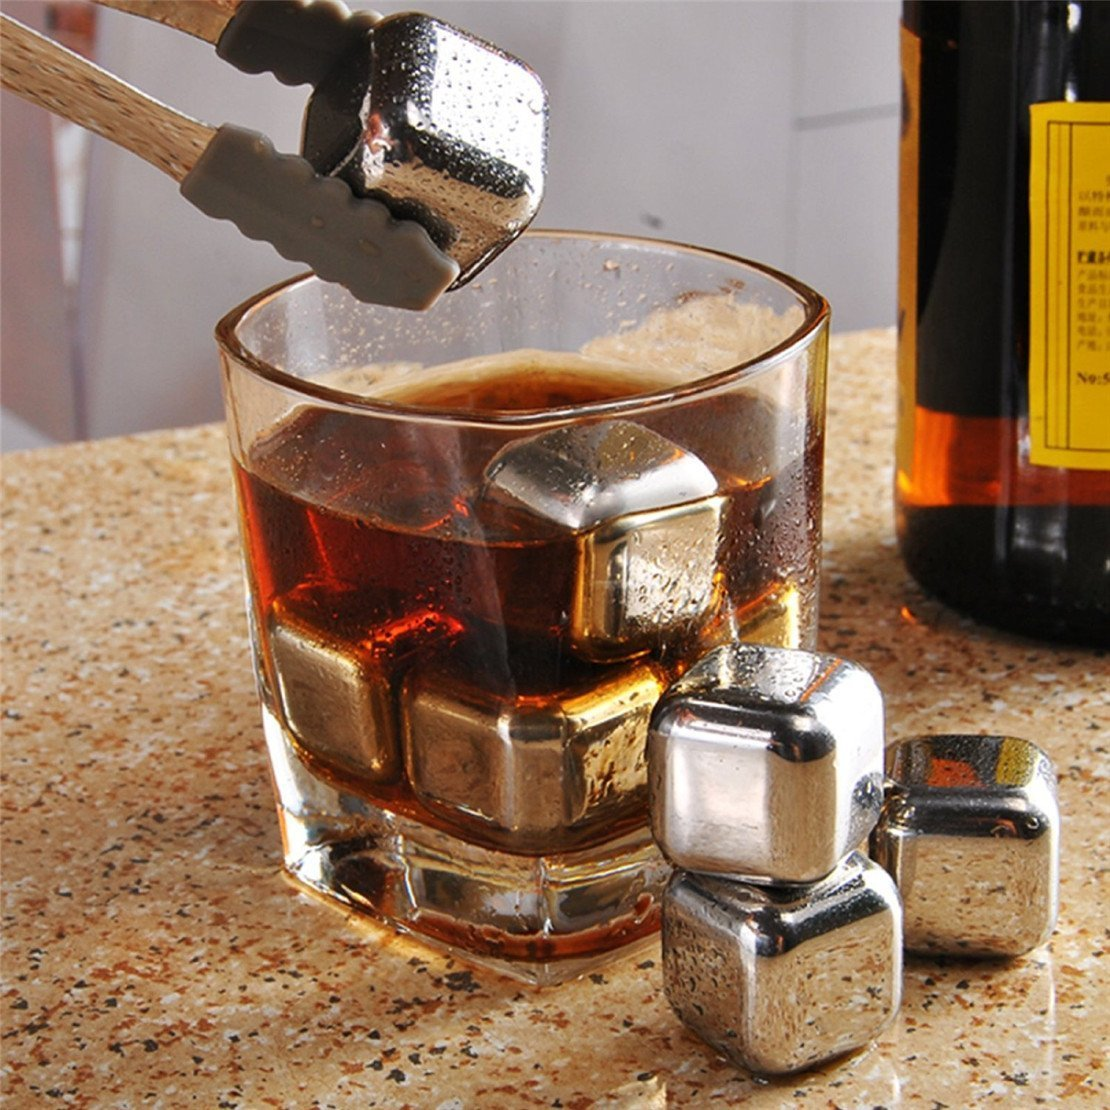 Jentay Stainless Steel Whiskey Stone 8 PCS Whiskey Stones Jentay Chilling Rocks Reusable Ice Cubes for Cooling Wine Drinks Beverage COMINHKPR135928